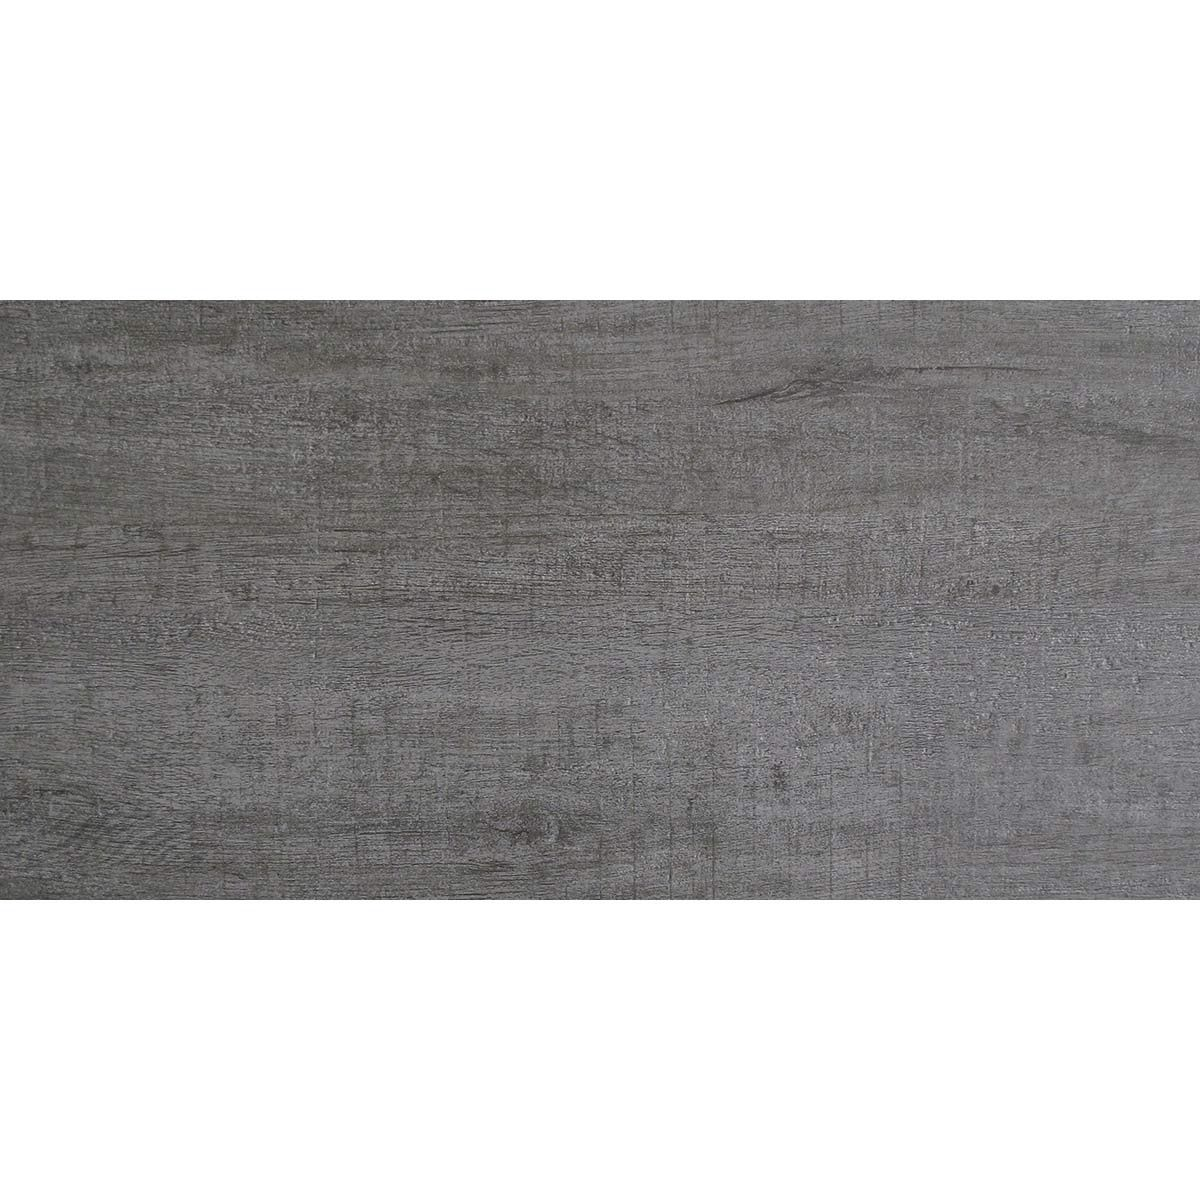 Rustic Glazed Porcelain Floor and Wall Tile - 24 ln. x 12 ln. (PM68038-2)